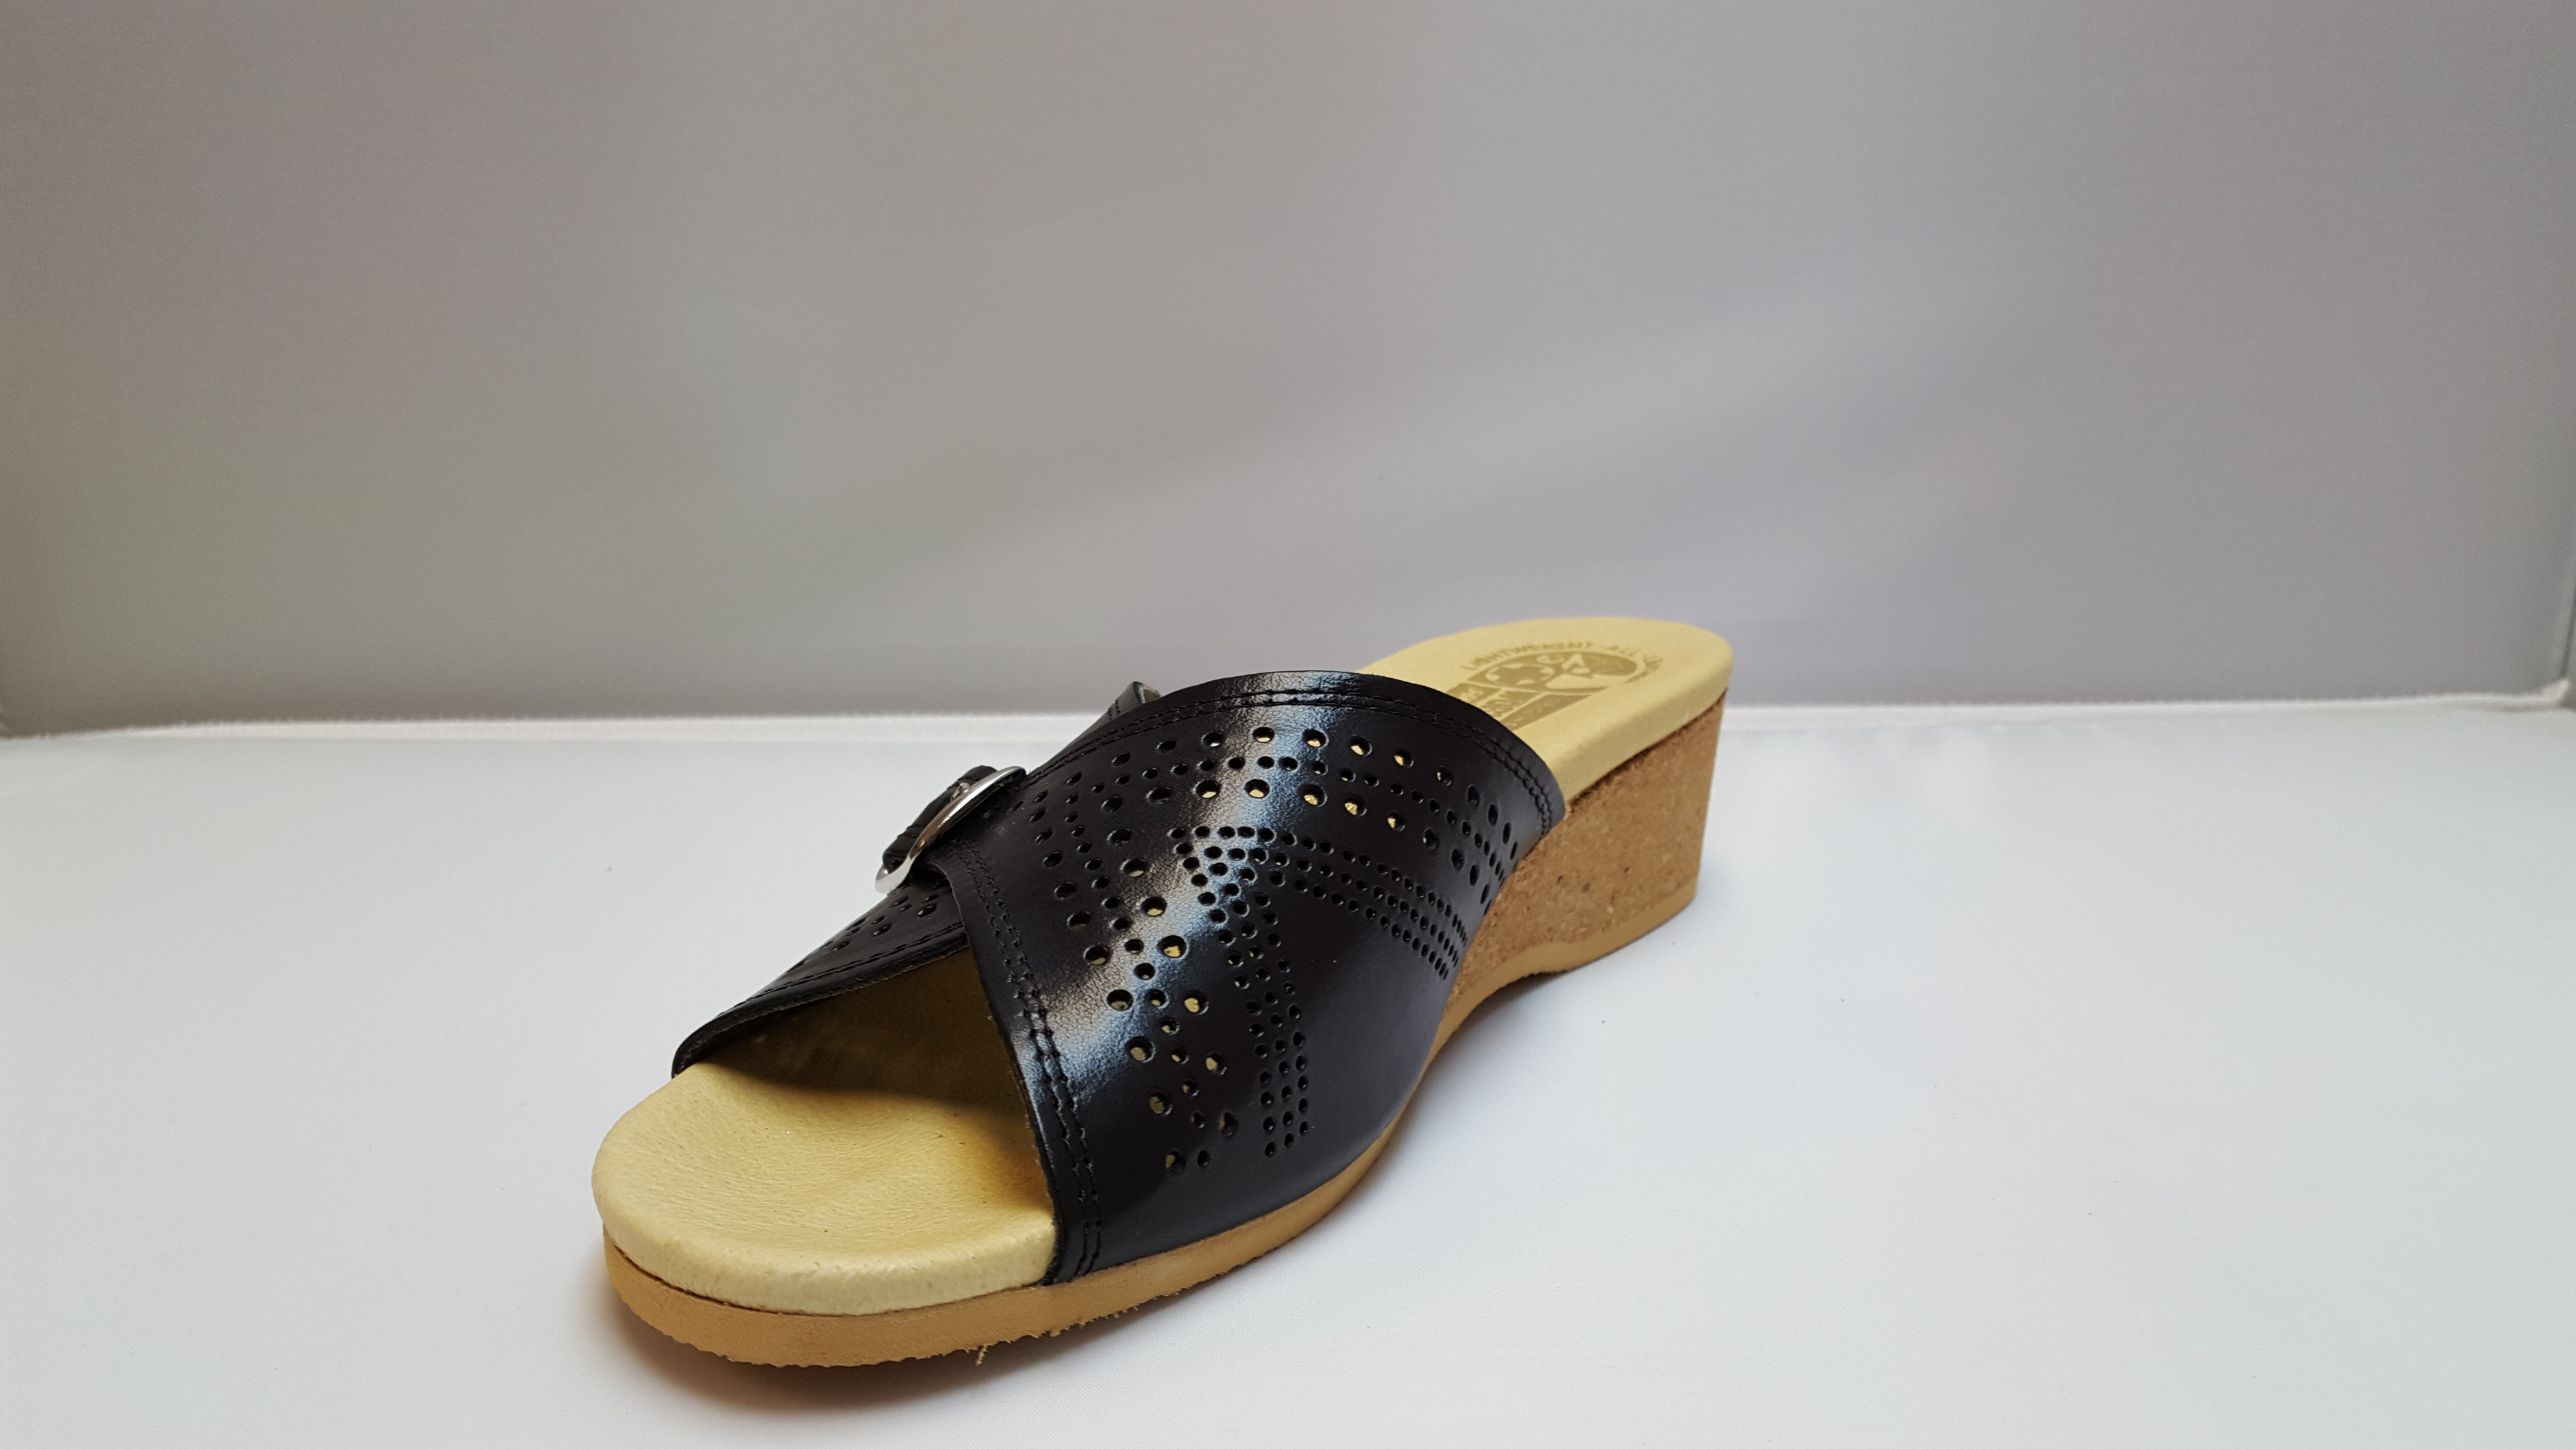 f35837c2556f Worishofer 251 Women s Black Leather Wedge slide sandal - River ...